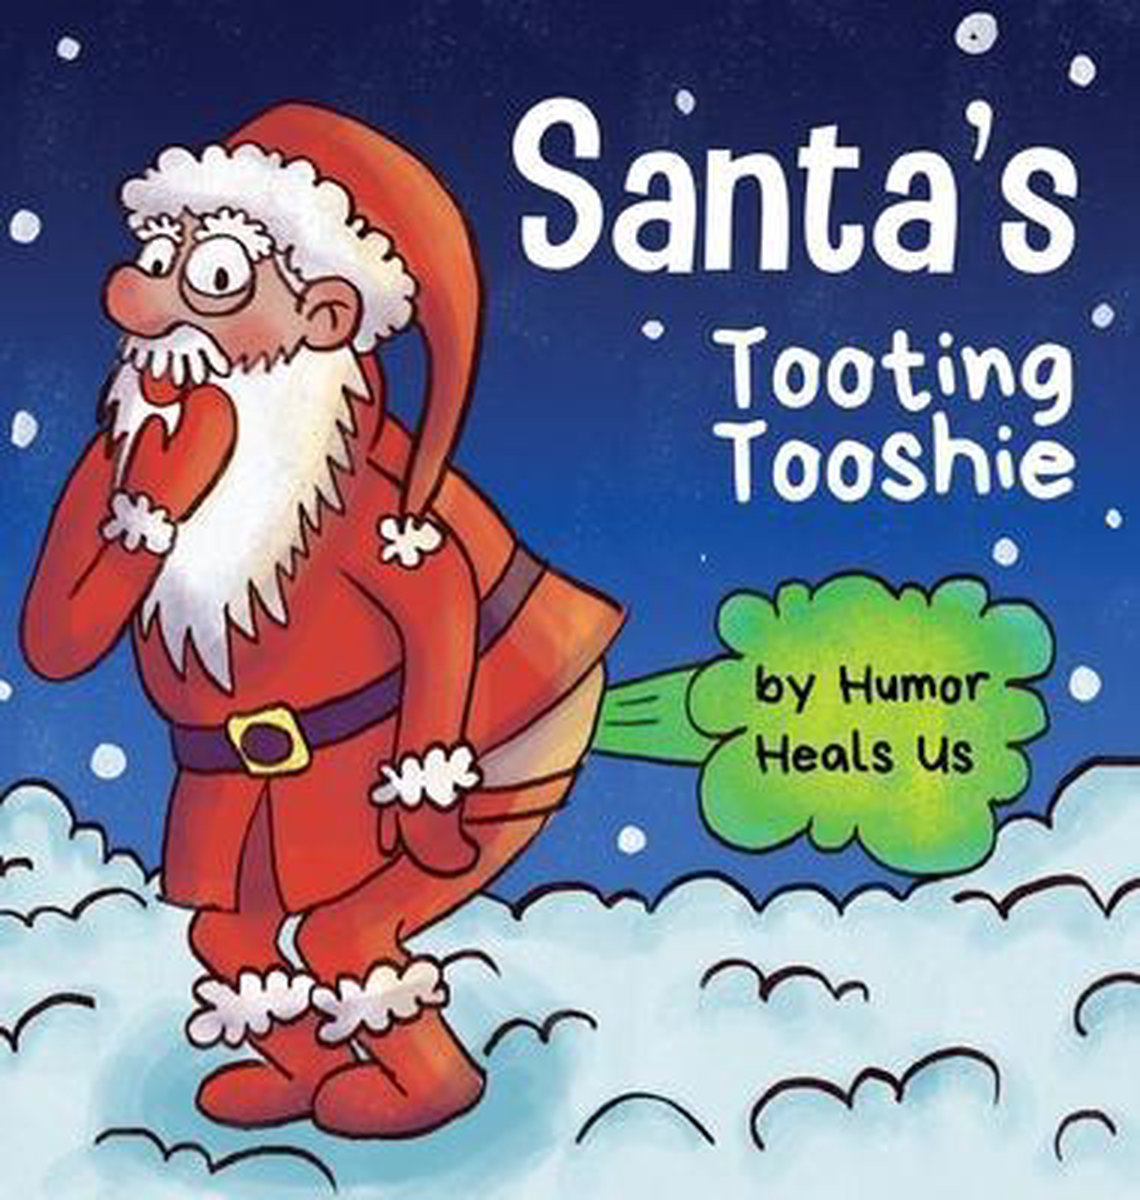 Santa's Tooting Tooshie: A Story About Santa's Toots (Farts)